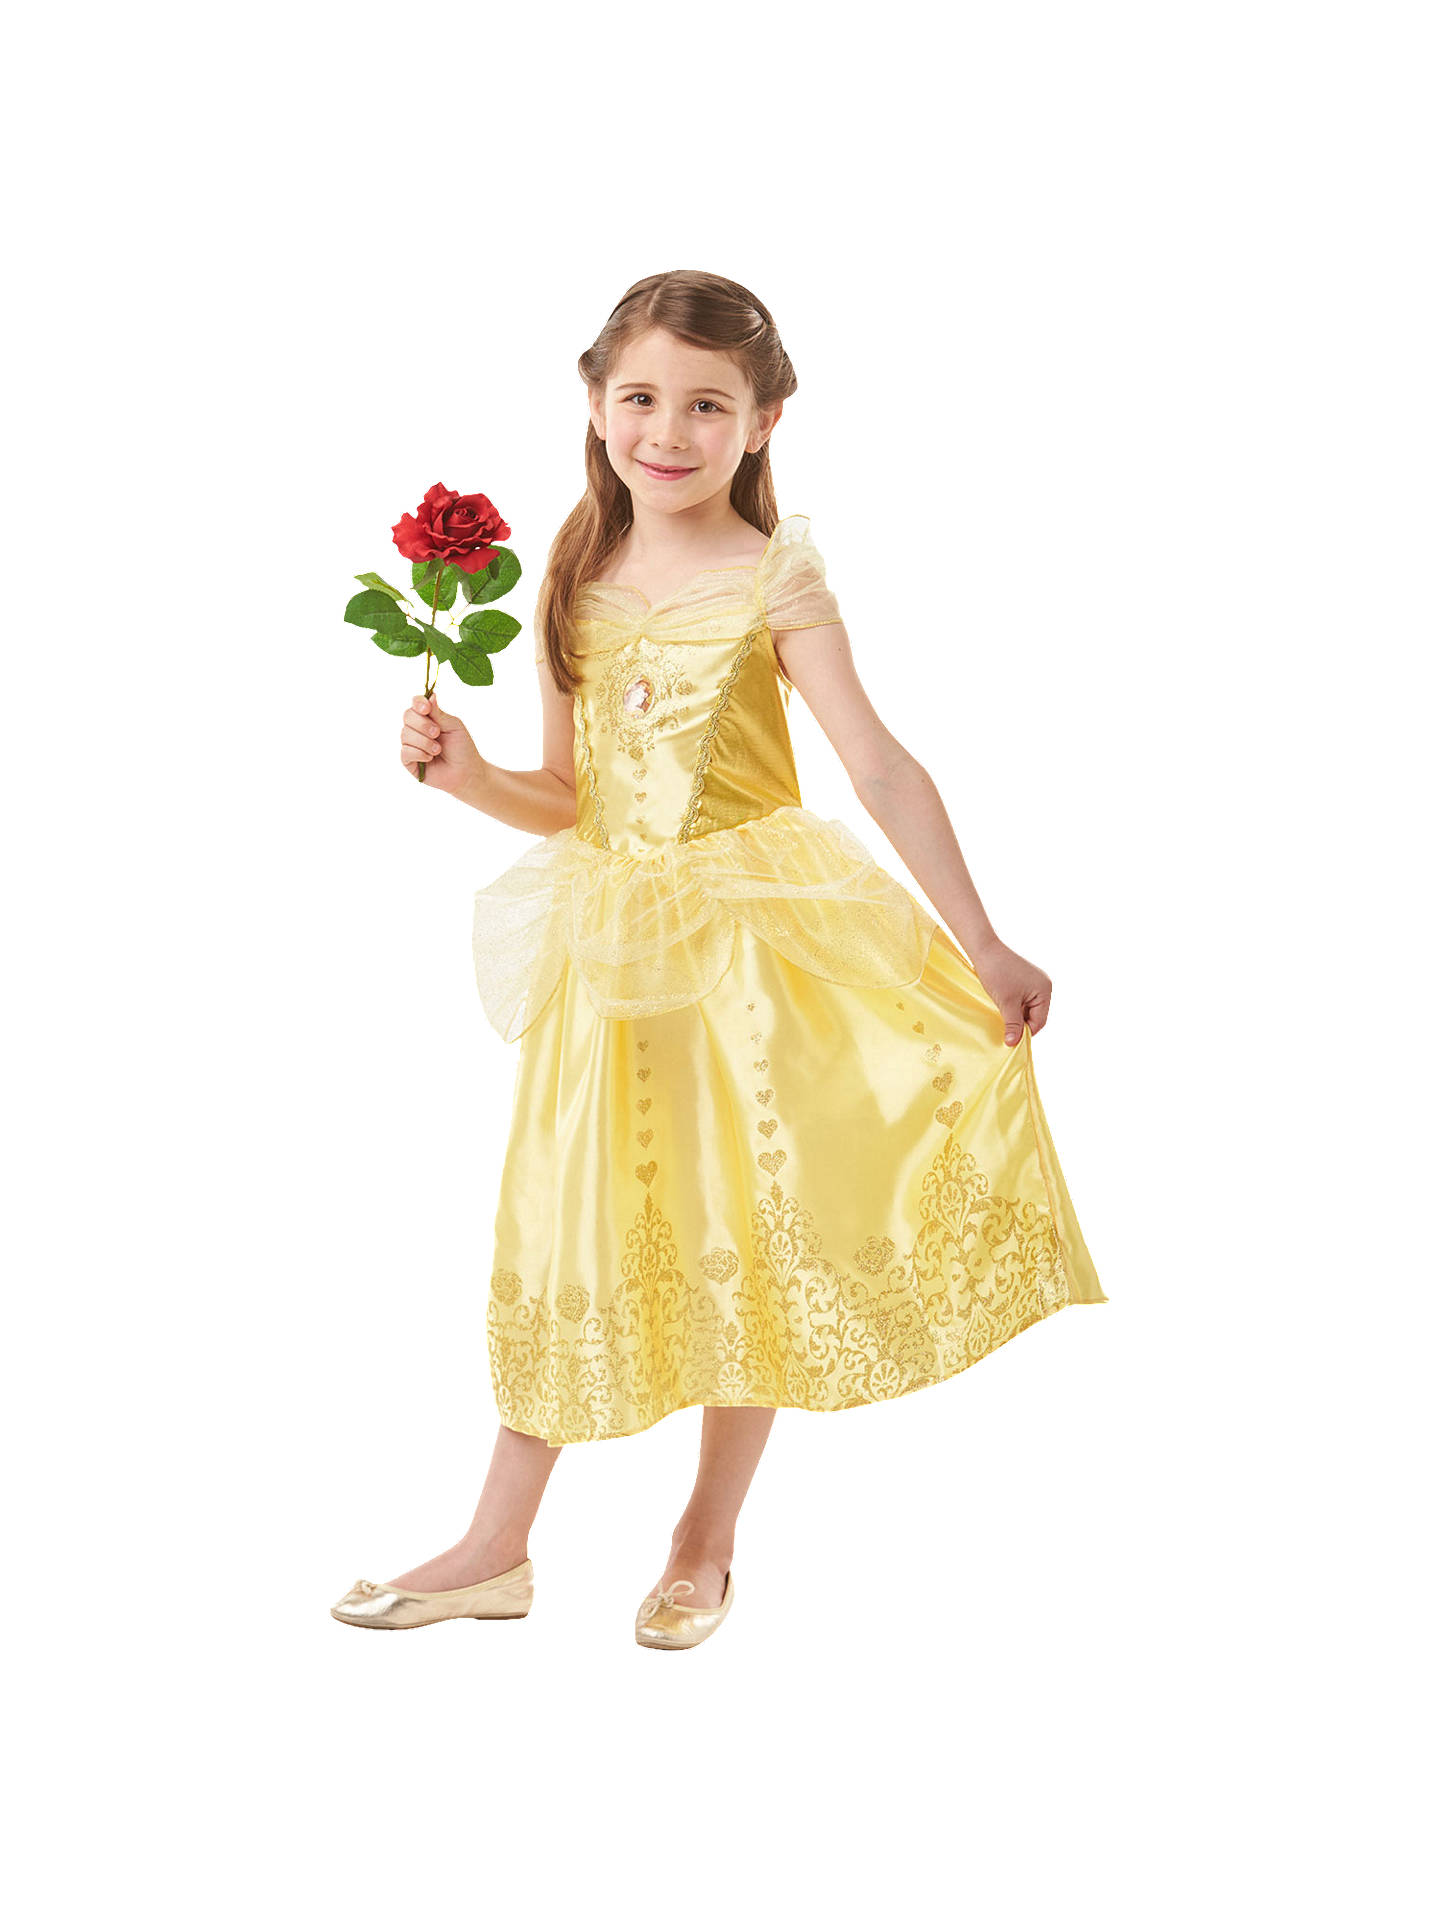 BuyDisney Princess Beauty and the Beast Belle Children's Costume, 5-6 years Online at johnlewis.com